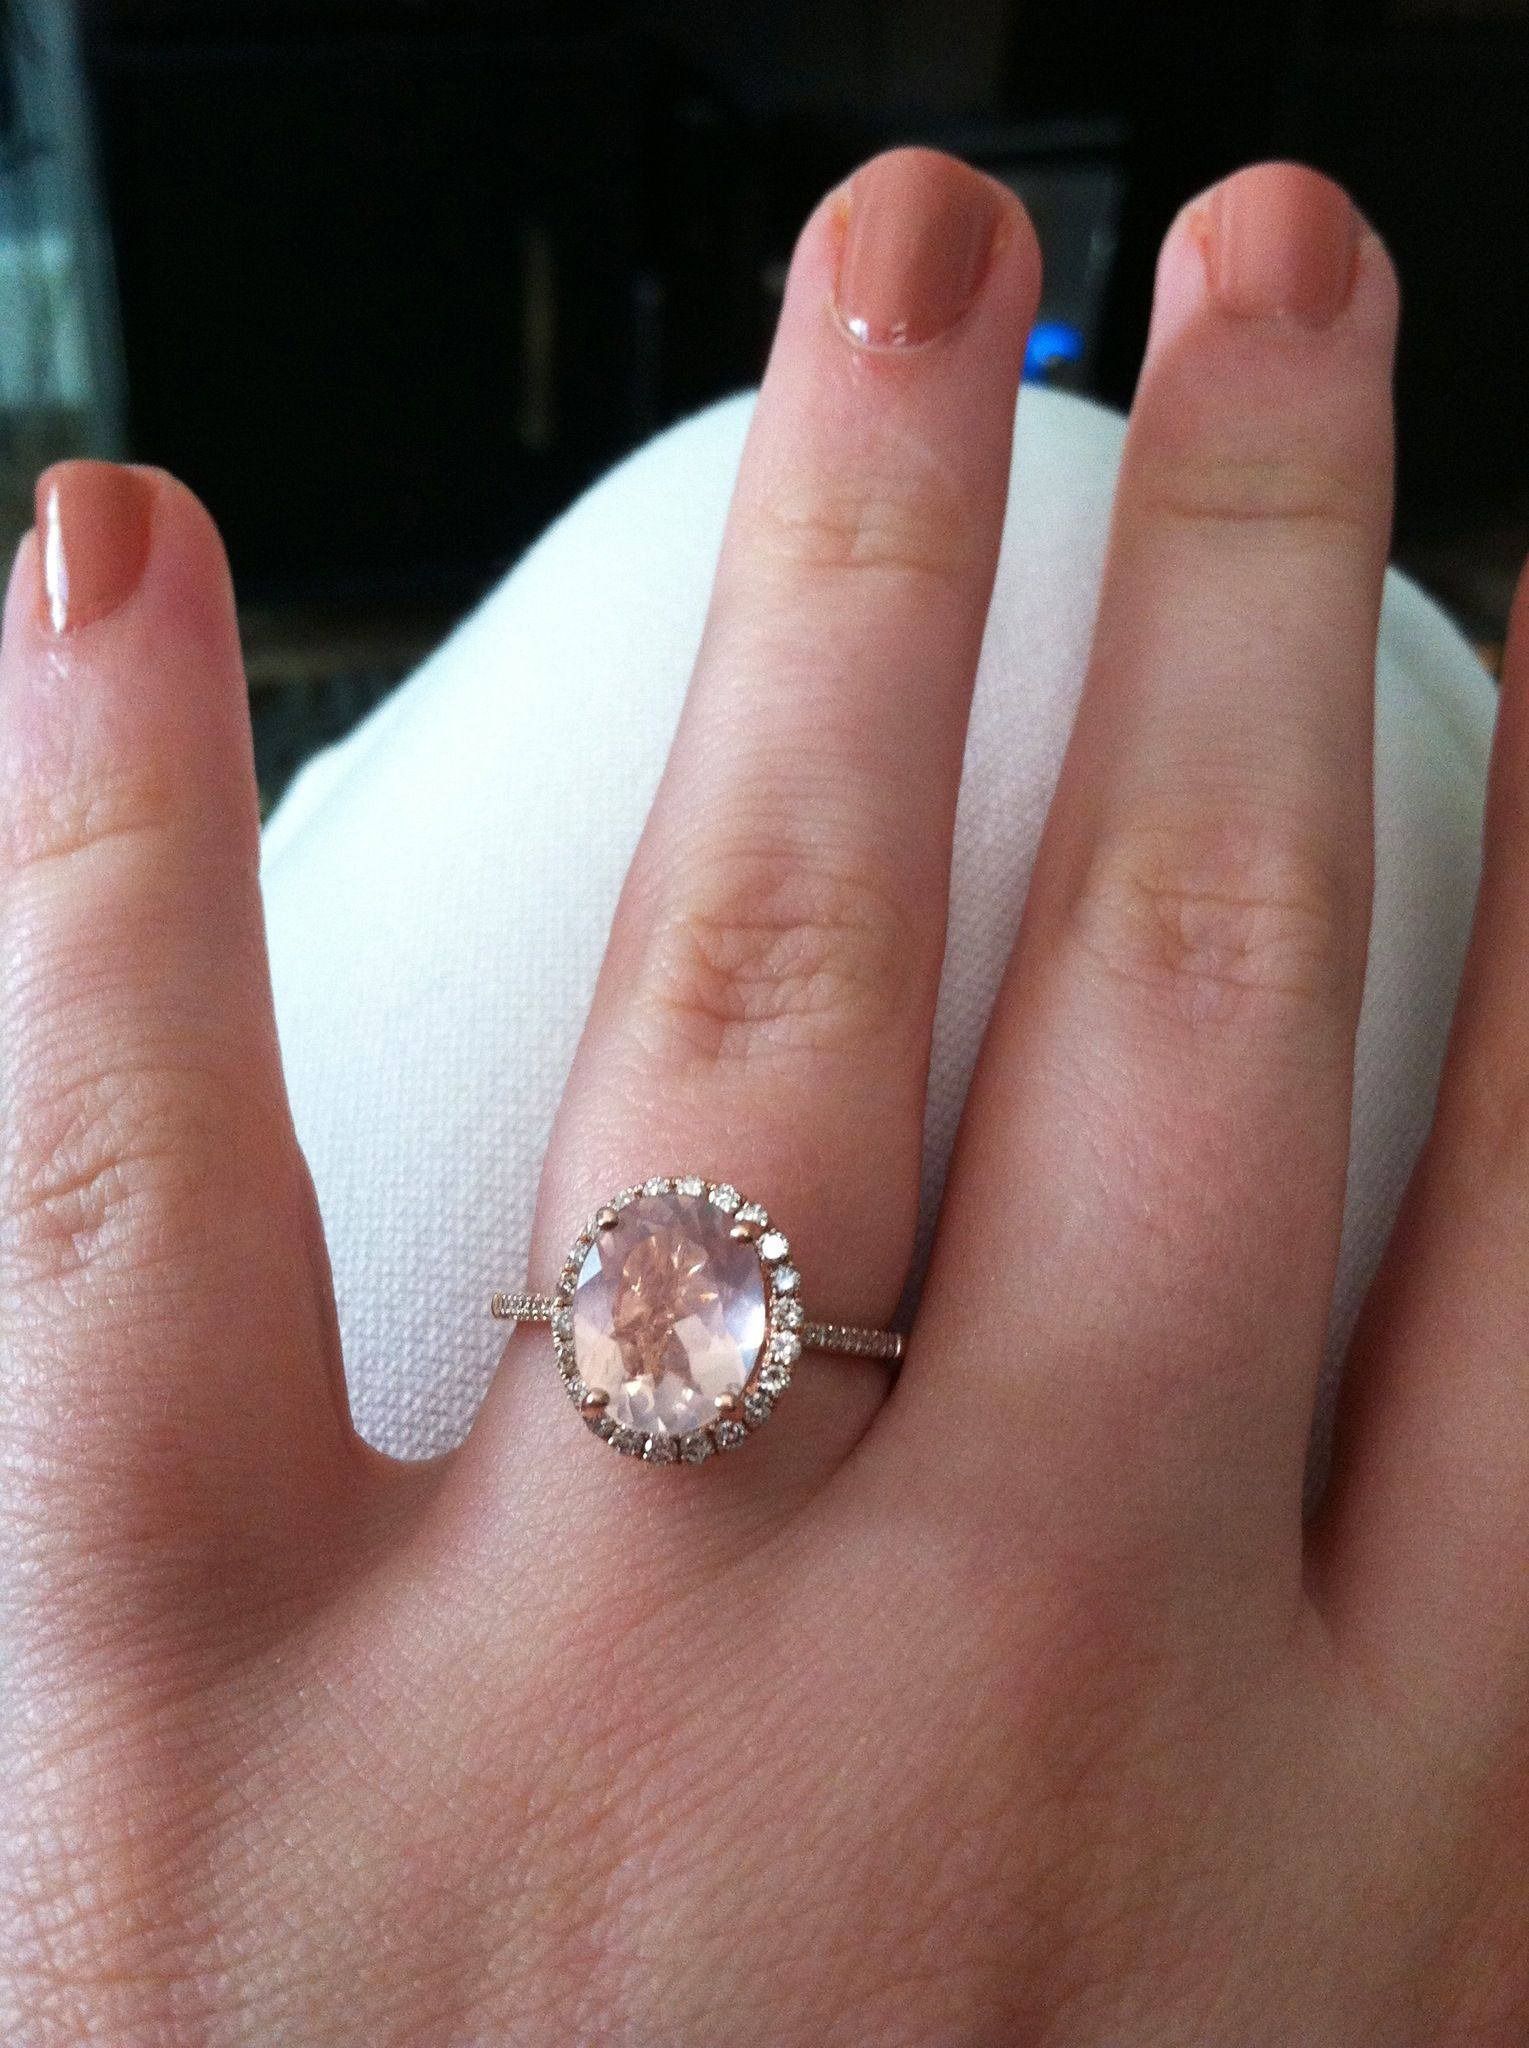 my beautiful engagement ring rose gold band with small